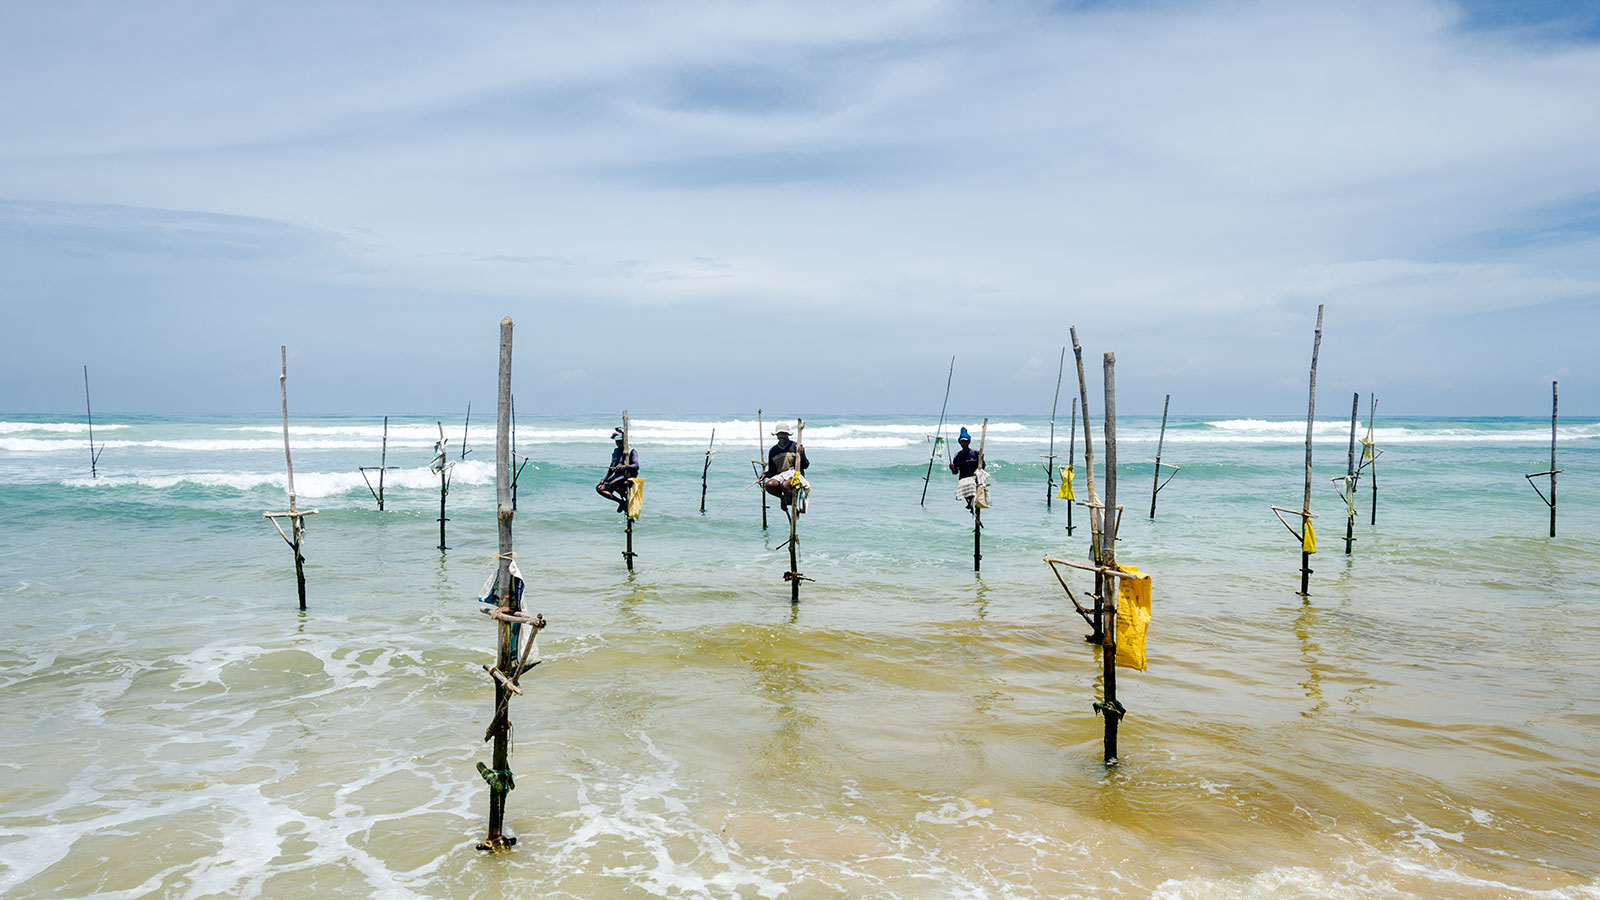 Are stilt fishermen just a tourist attraction?